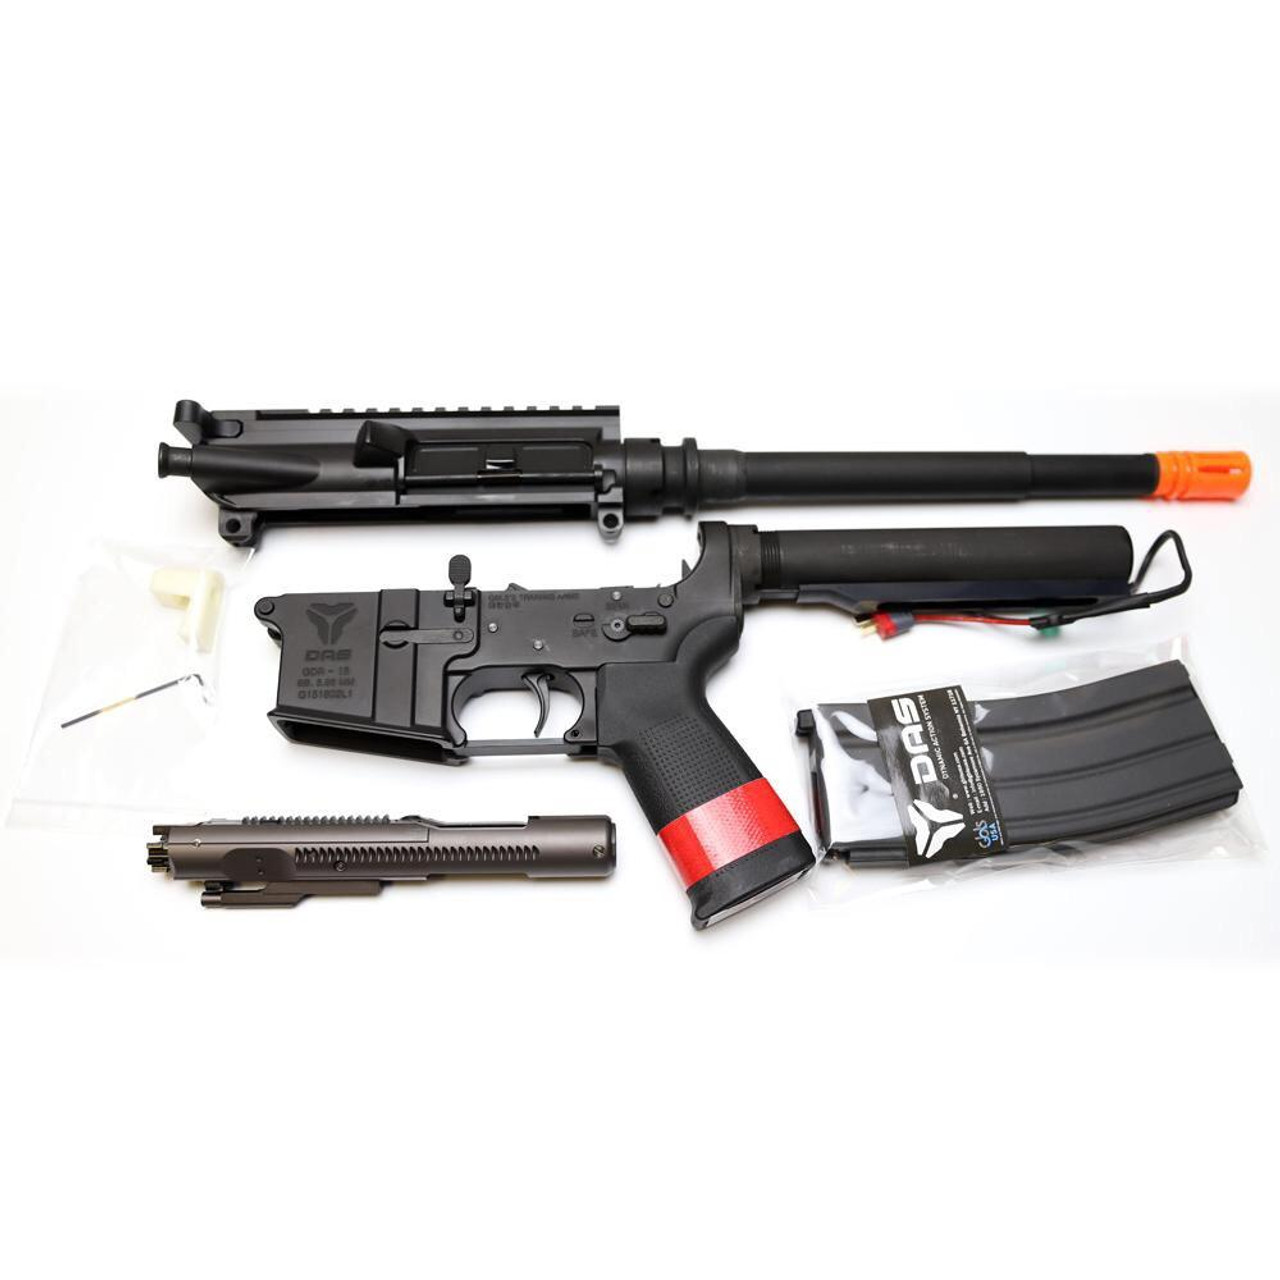 GBLS DAS GDR-15 SKELETON CQB KIT